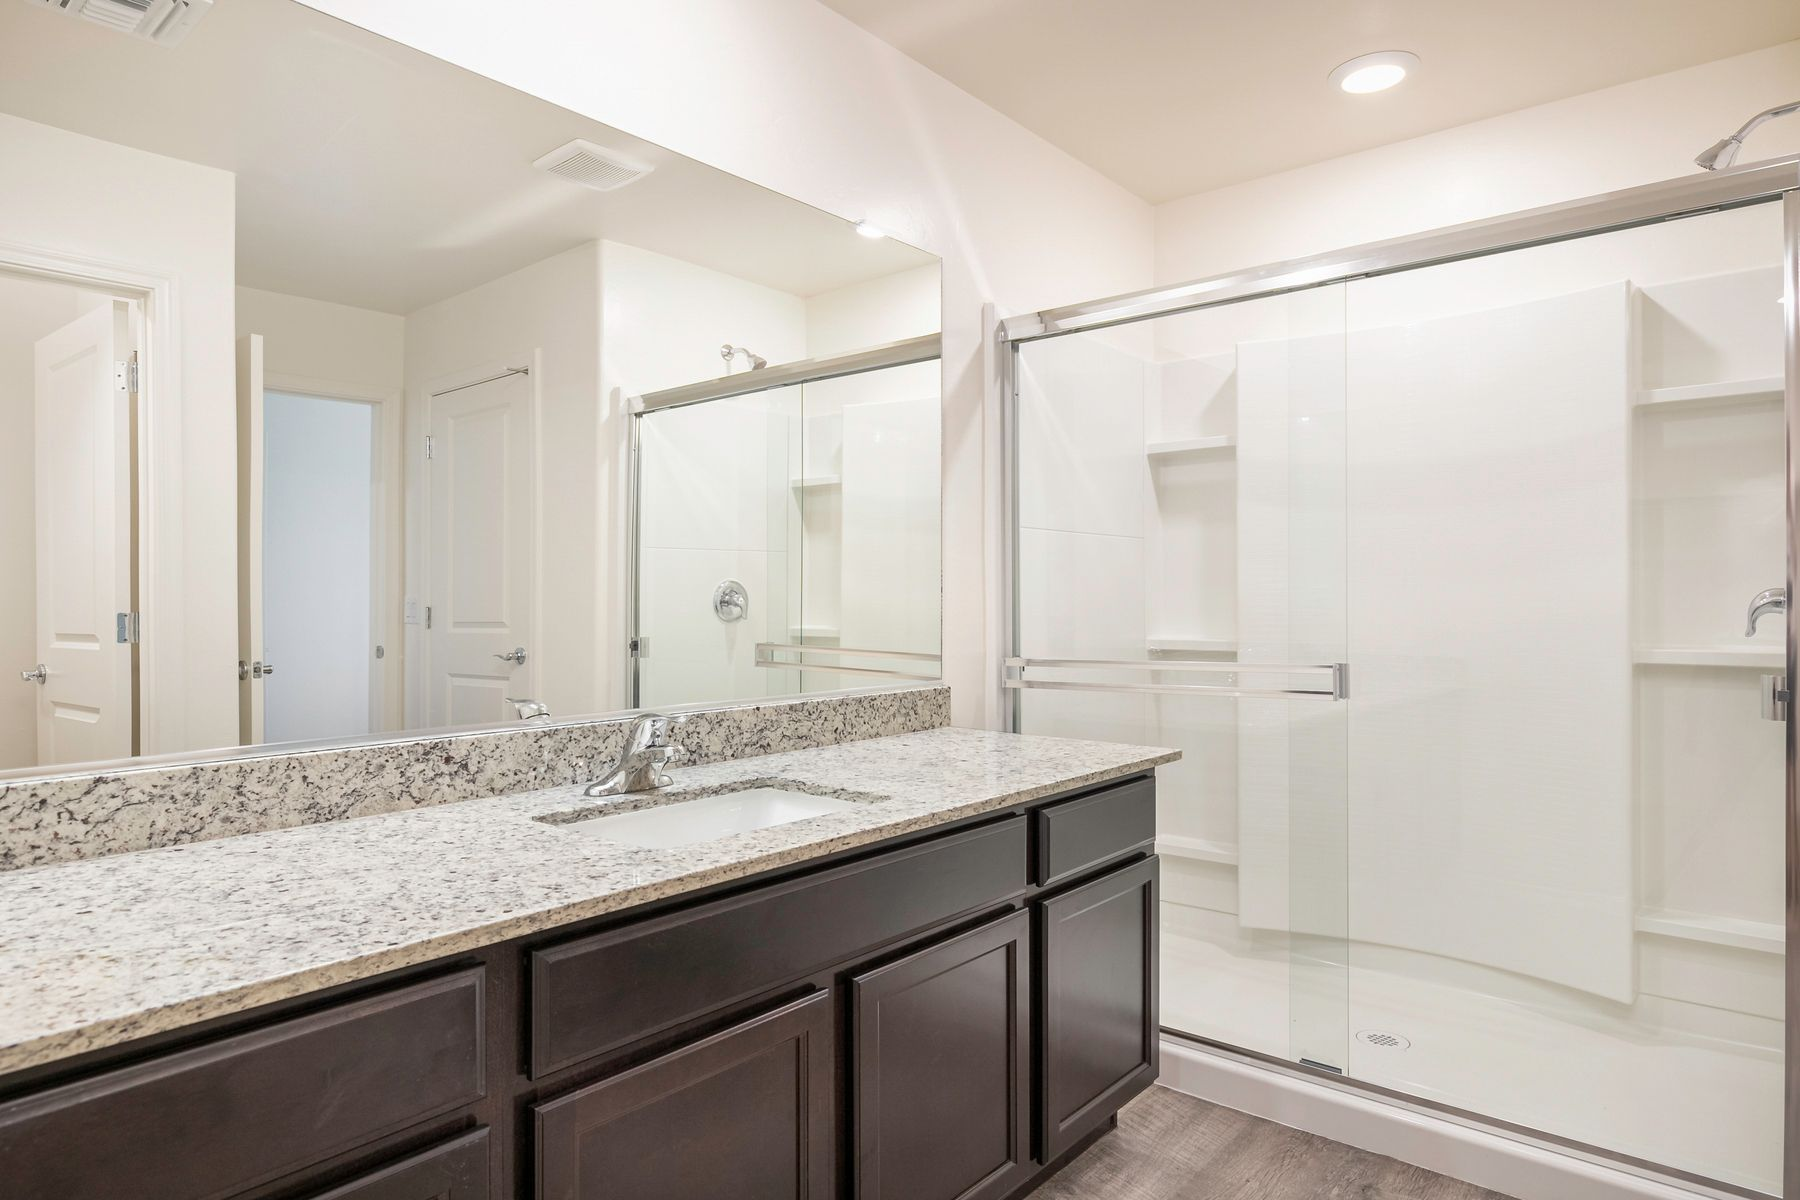 Bathroom featured in the Willow By LGI Homes in Tucson, AZ